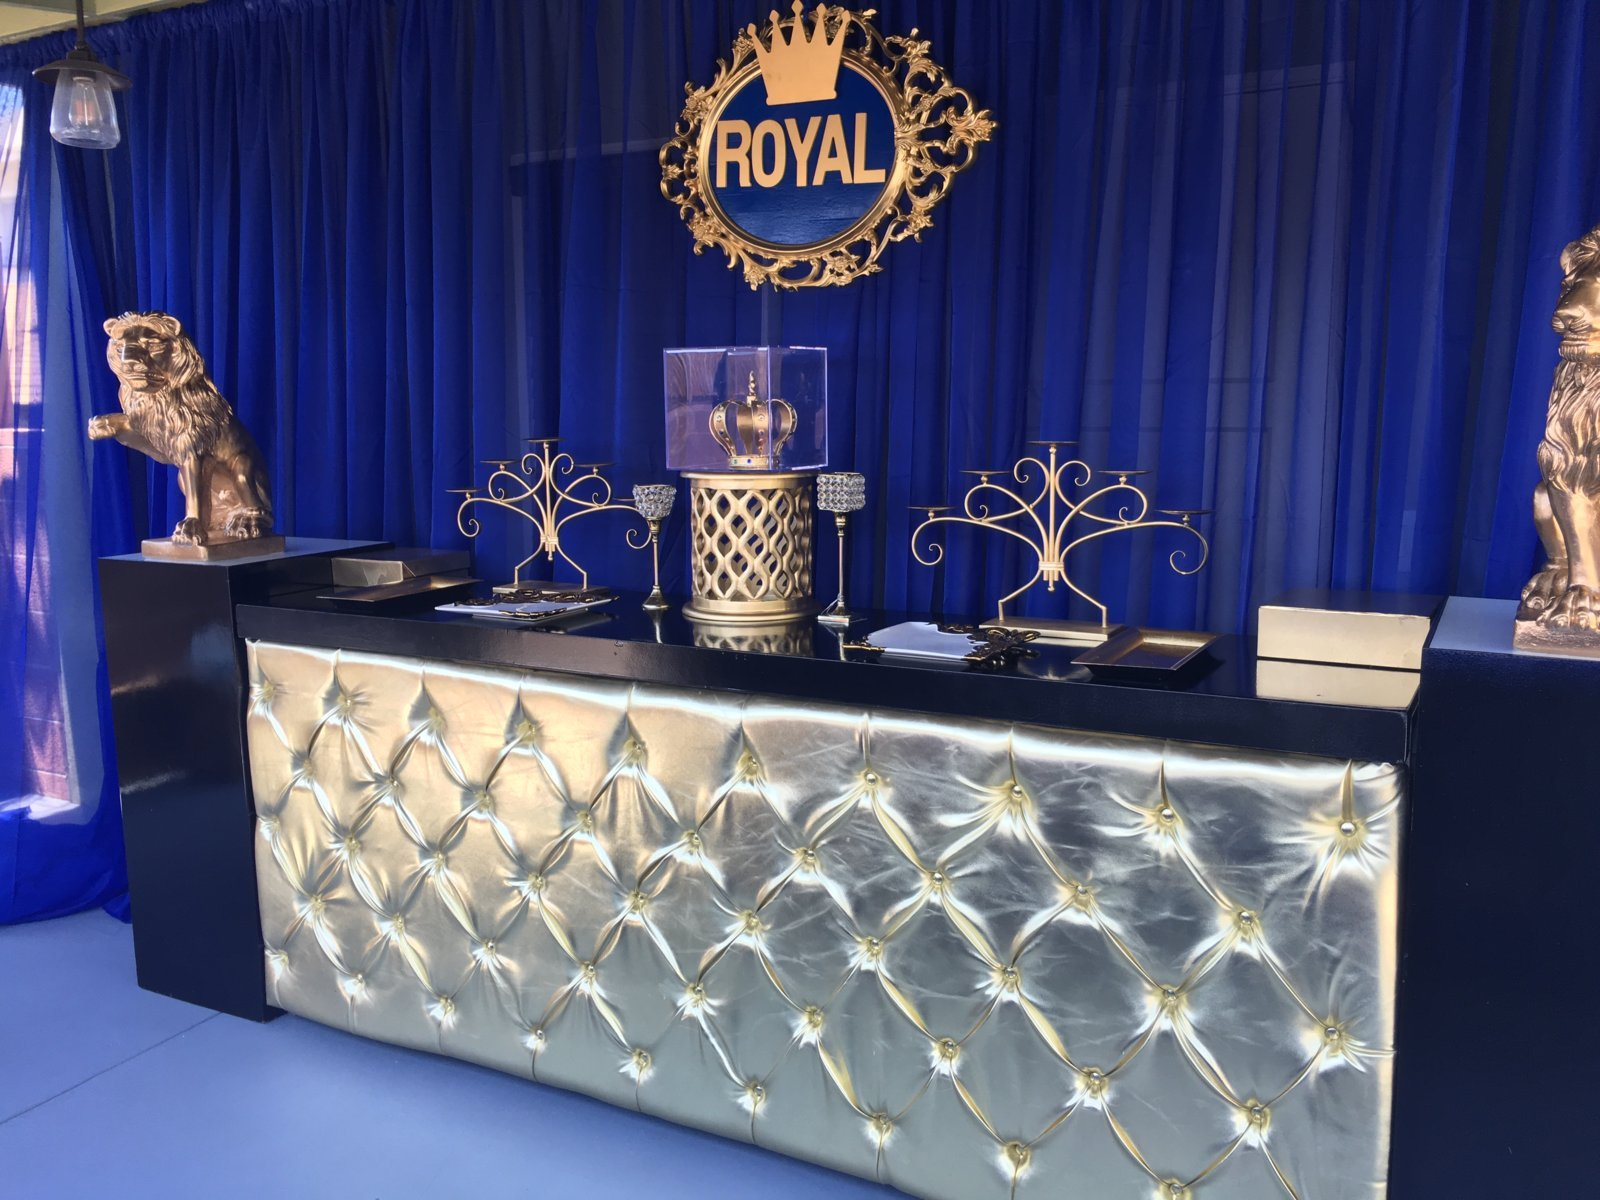 Royal Prince theme party June 2016  Lux Lounge EFR 888